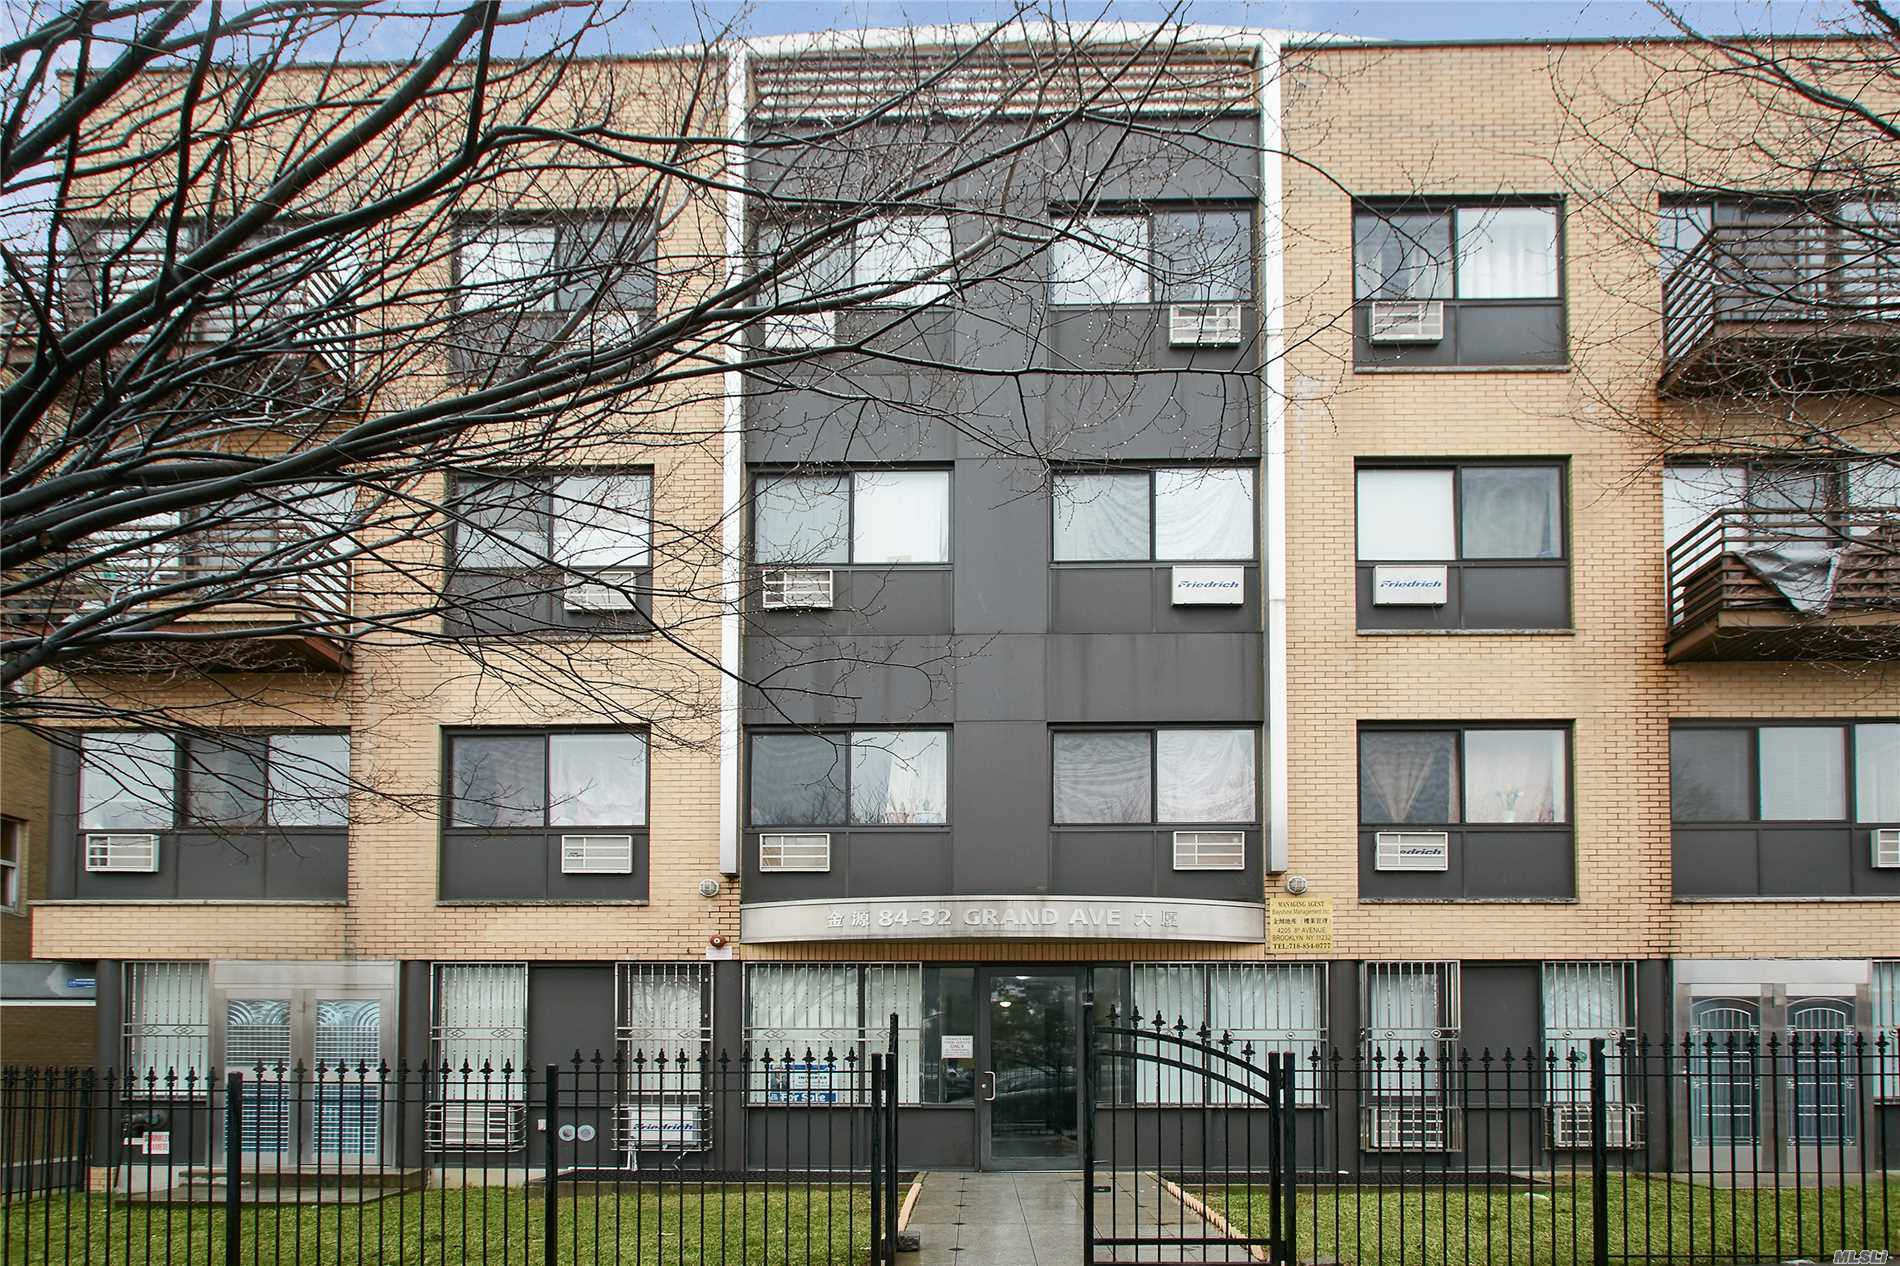 Bright and Spacious 1 Bedroom Condo In The Heart Of Elmhurst. Corner unit with a lot of windows. Hardwood Floors Through-out. Brand New Washer/Dryer in Unit. On-Site Parking Available and easy to park on the street. Close To Transportation, R & M Subway Lines, Bus Q58 and Q59, Shopping, Dining and Much More. Move in Condition!!